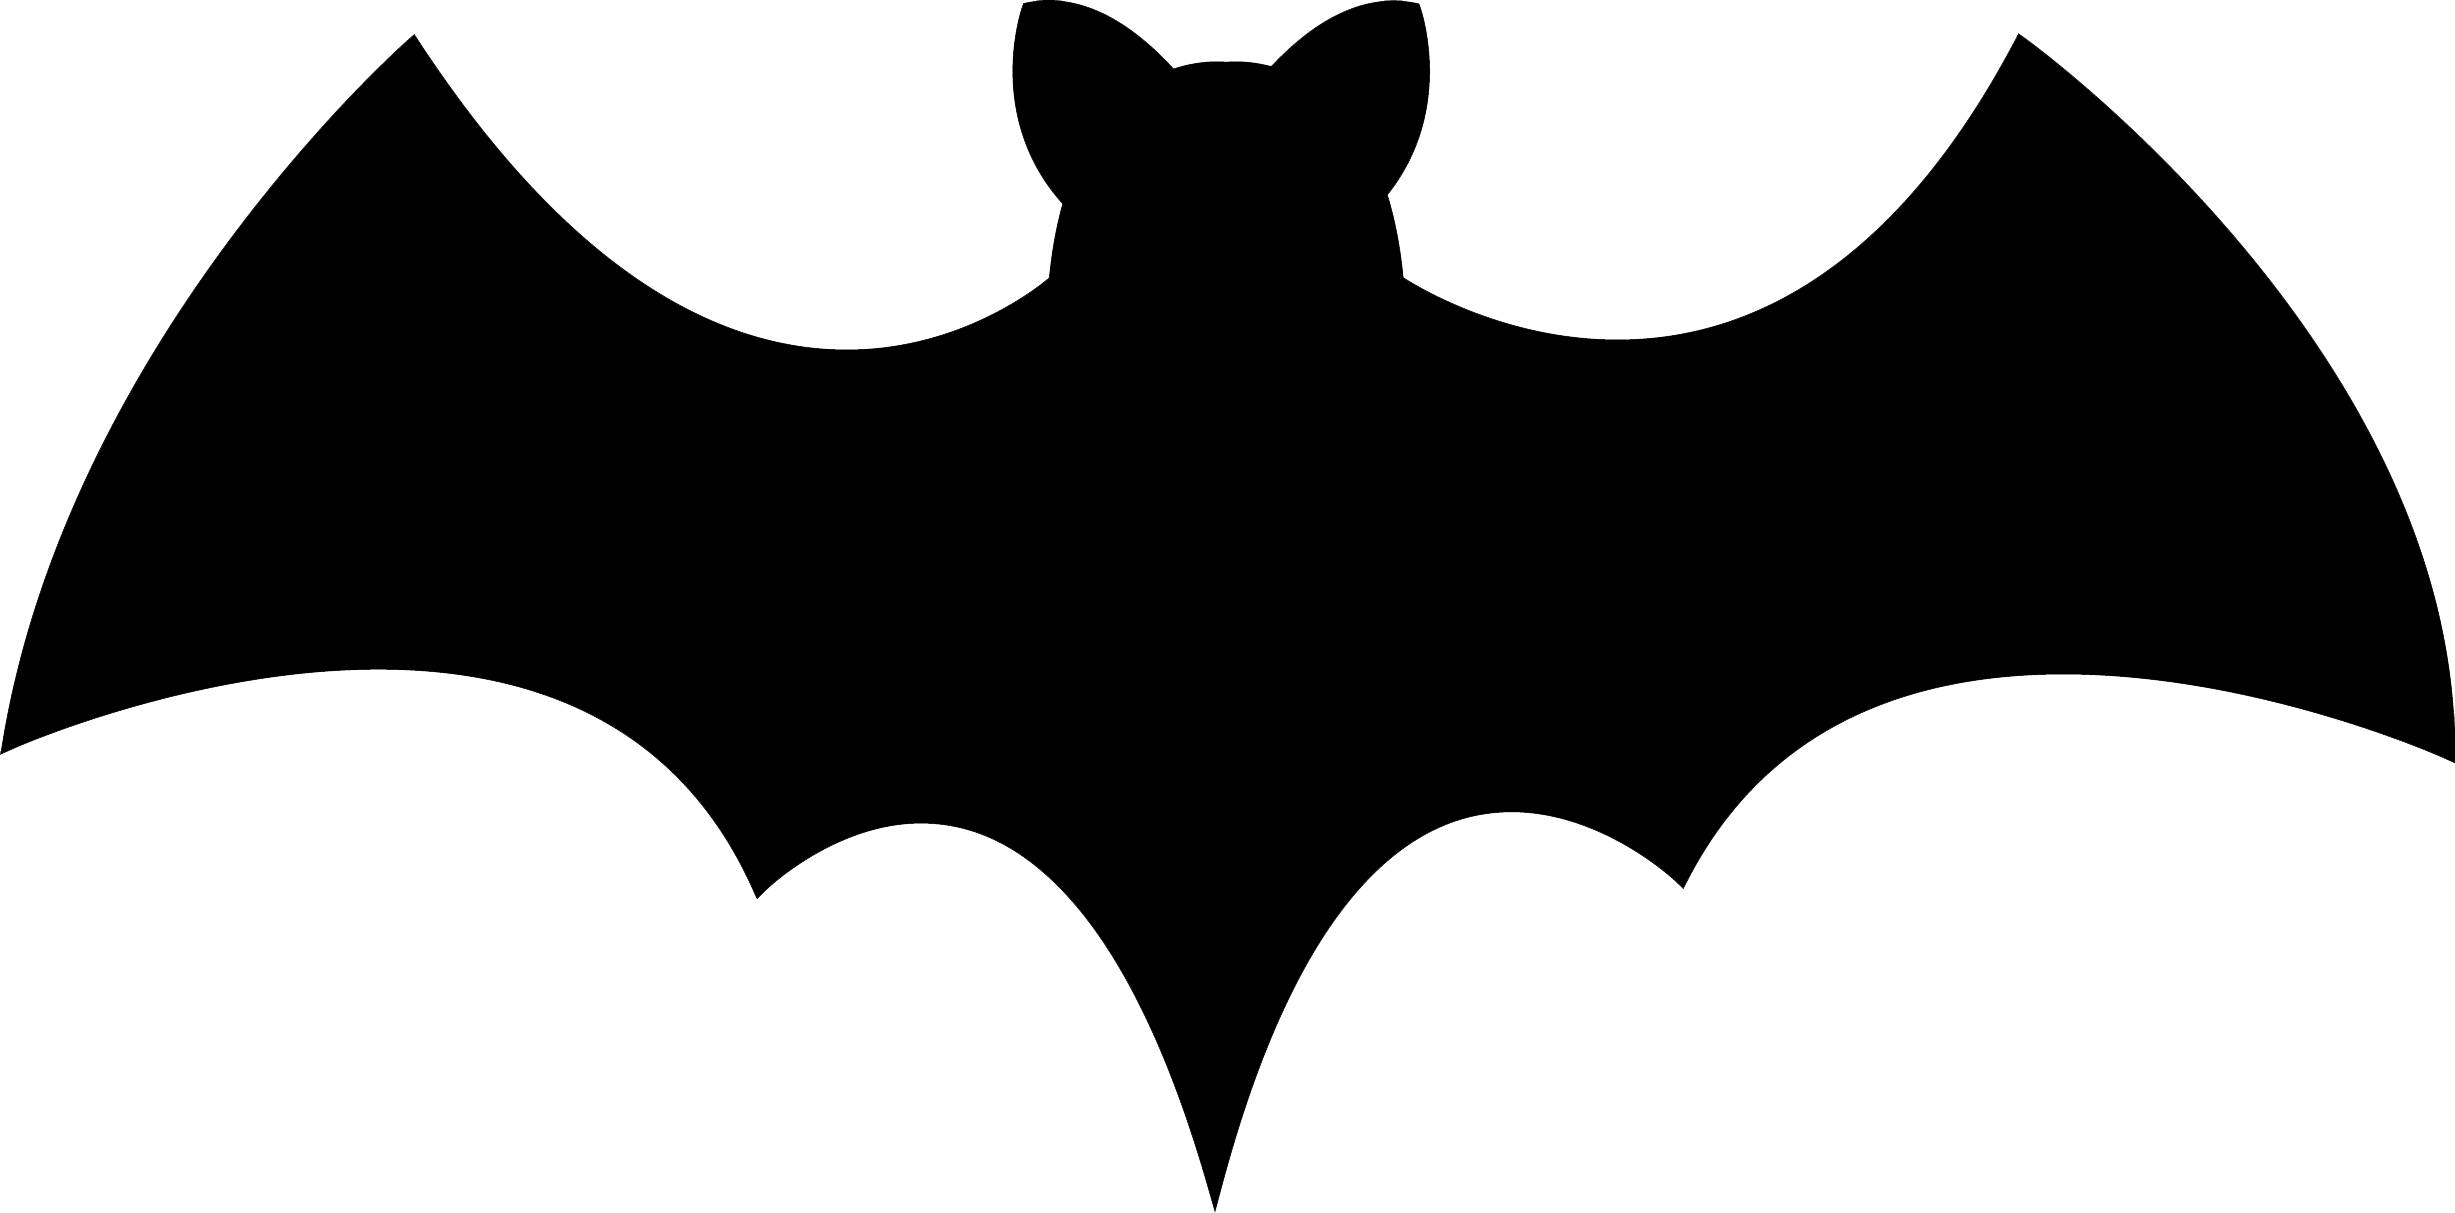 Bats clipart halloween graphic free stock 8 2 Halloween Bat Picture graphic free stock